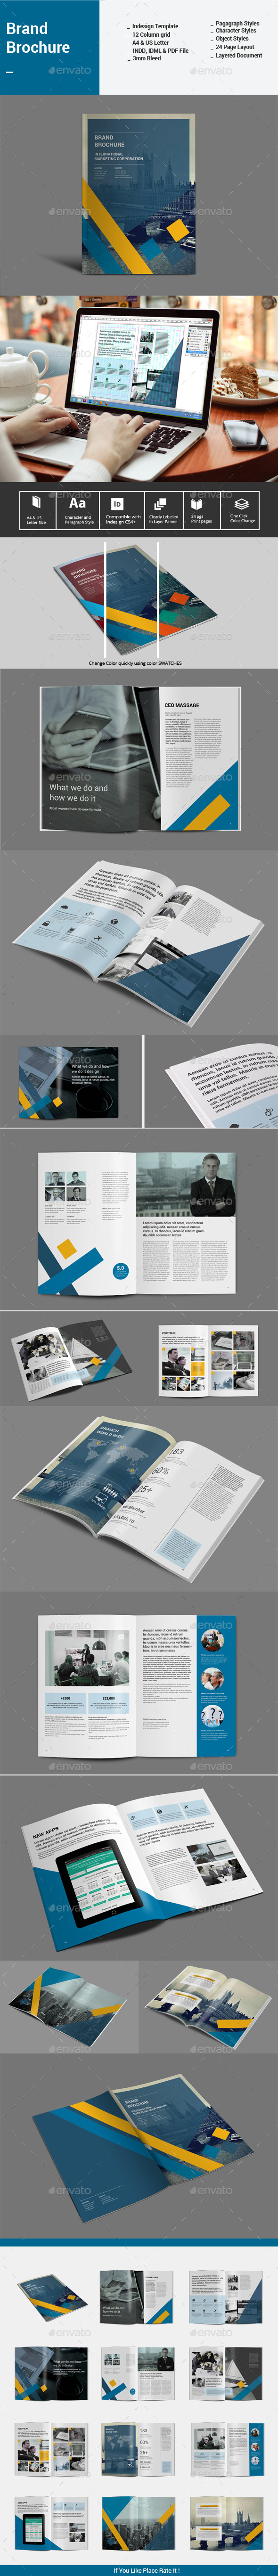 Brand Brochure Template - Corporate Brochures